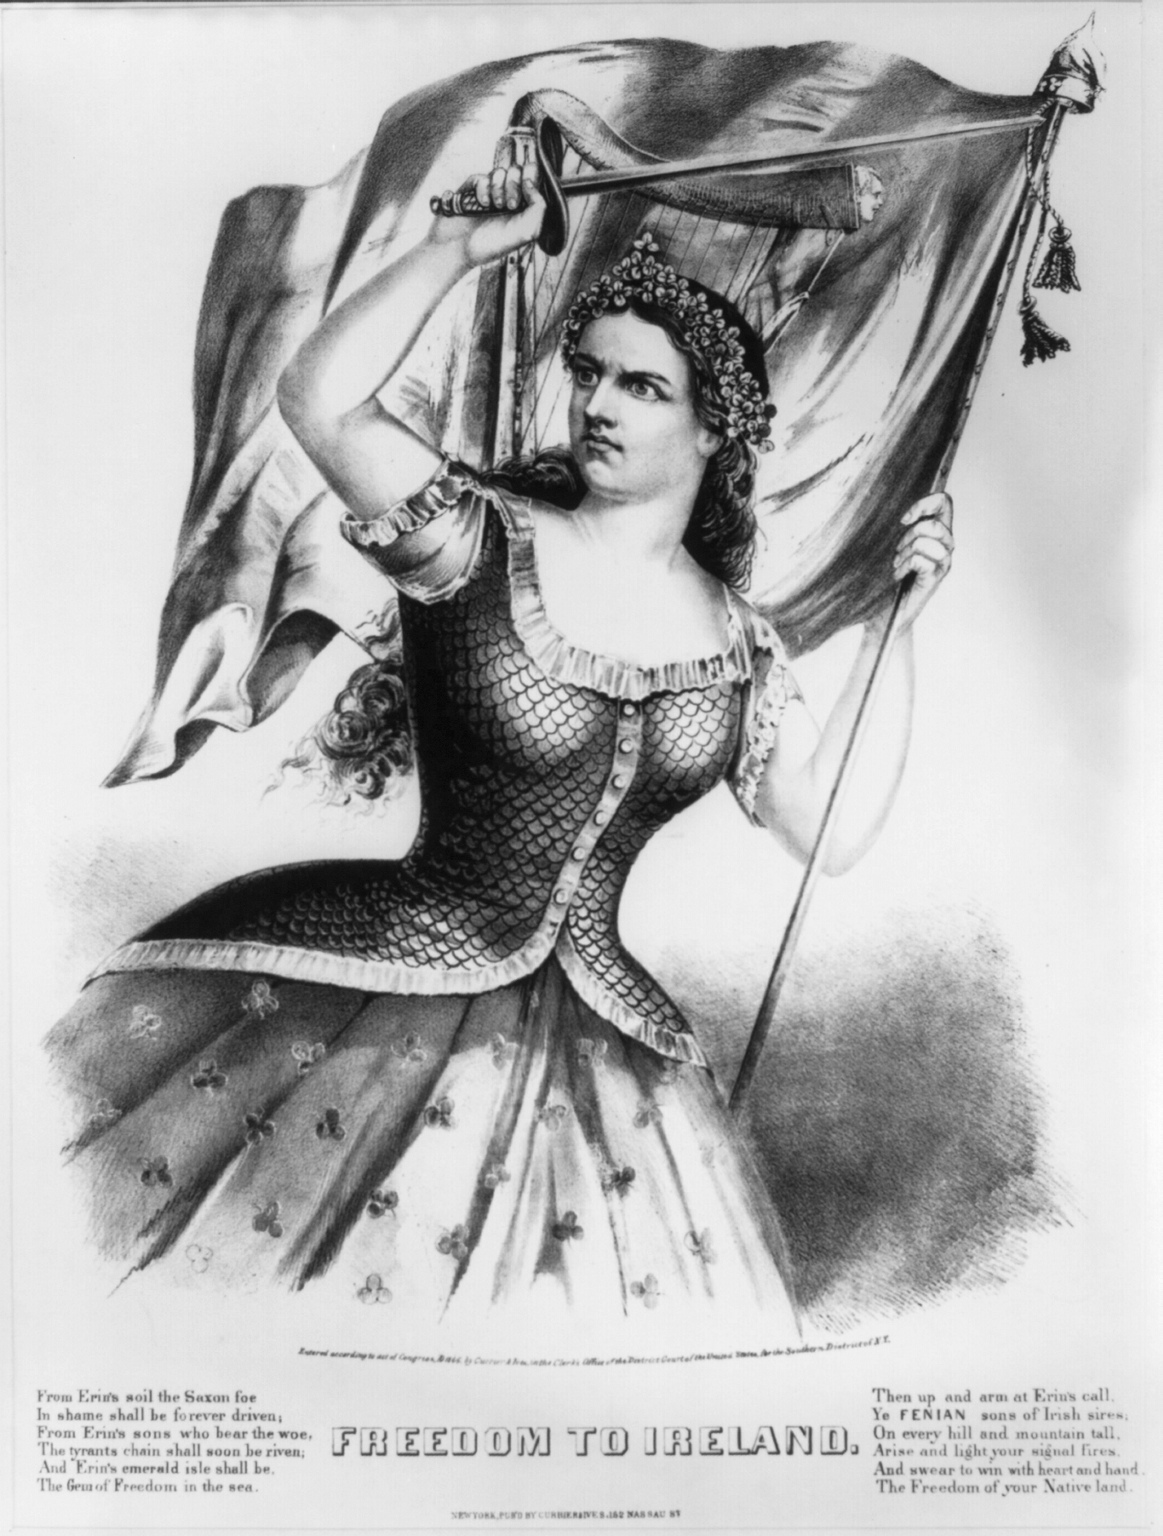 'Freedom to Ireland' by Currier & Ives, 1866 (Library of Congress)